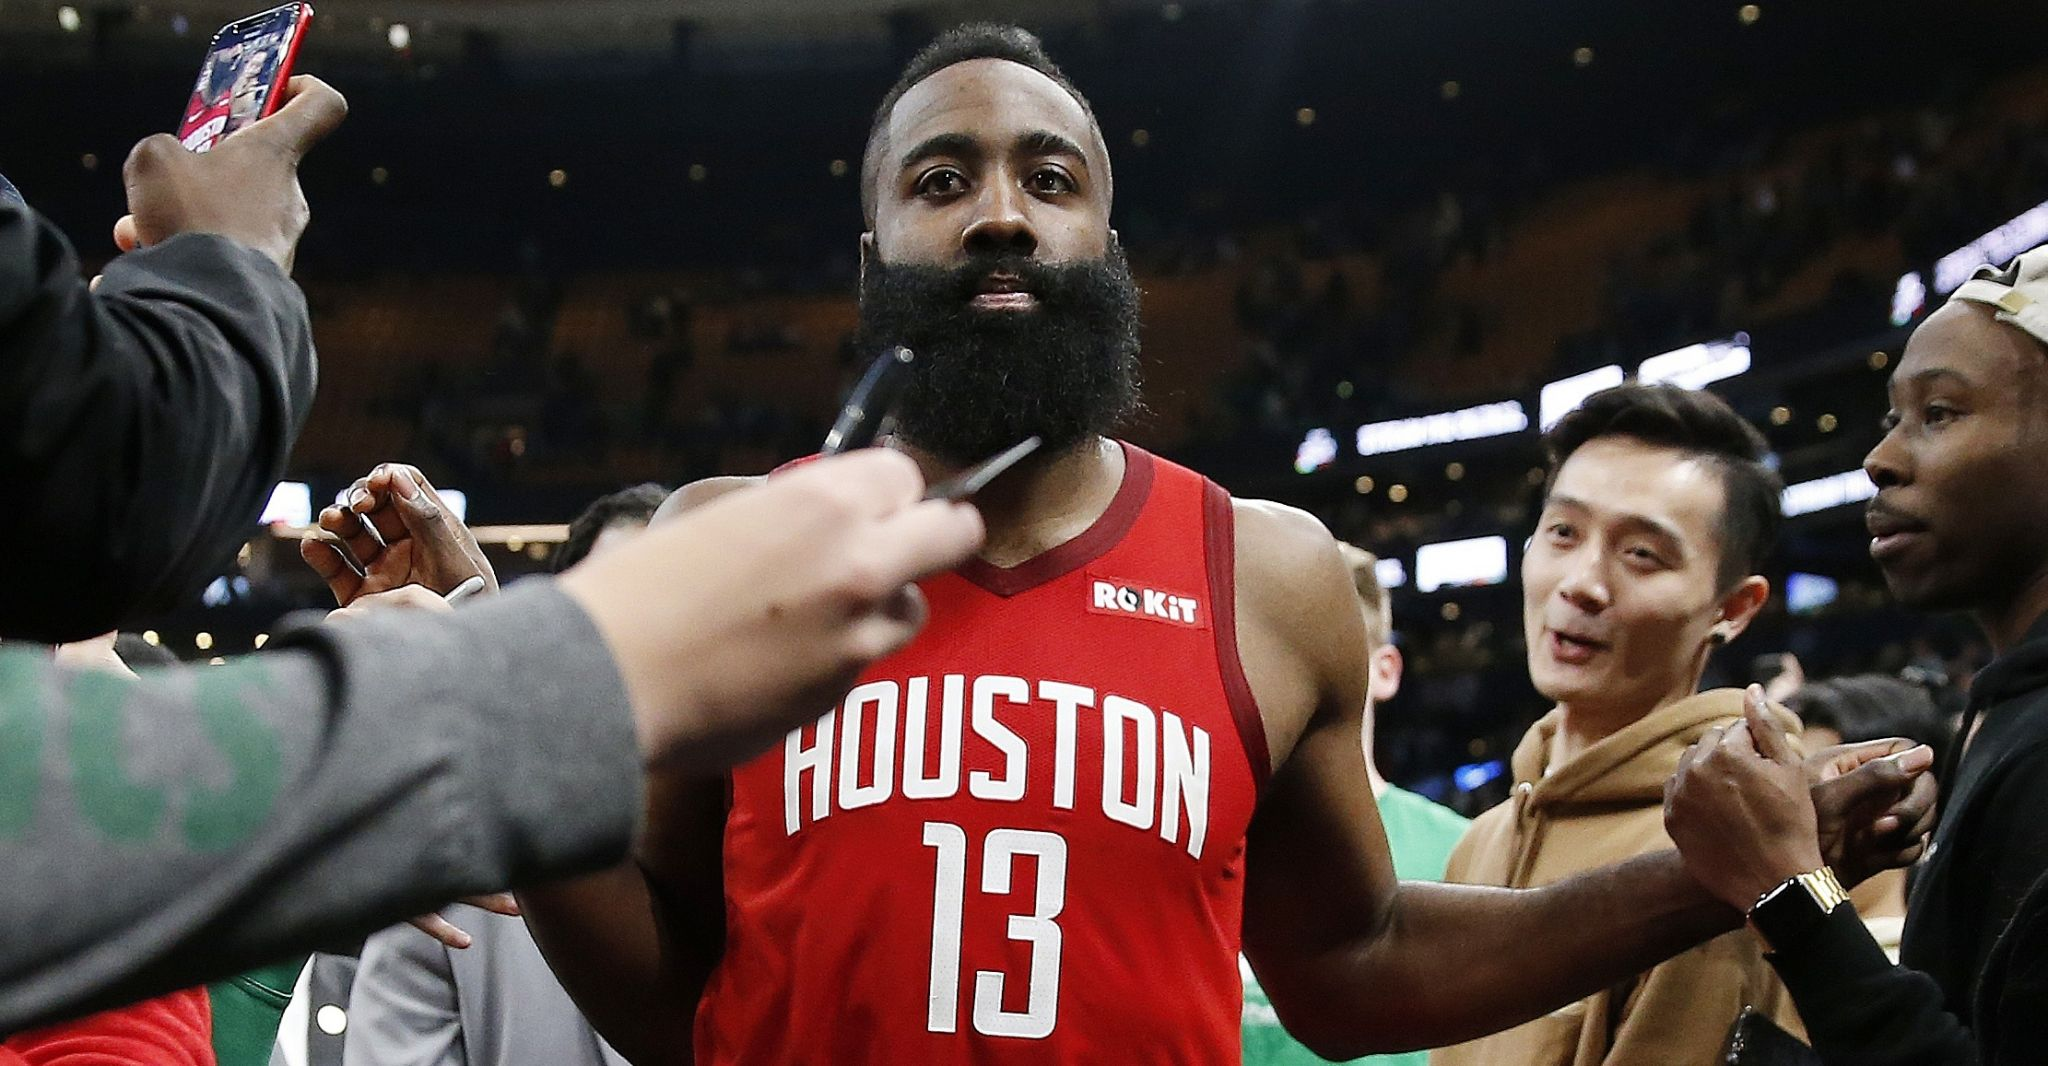 online store 4729f b6b05 Rockets hold off Celtics for 5th consecutive win - Houston Chronicle